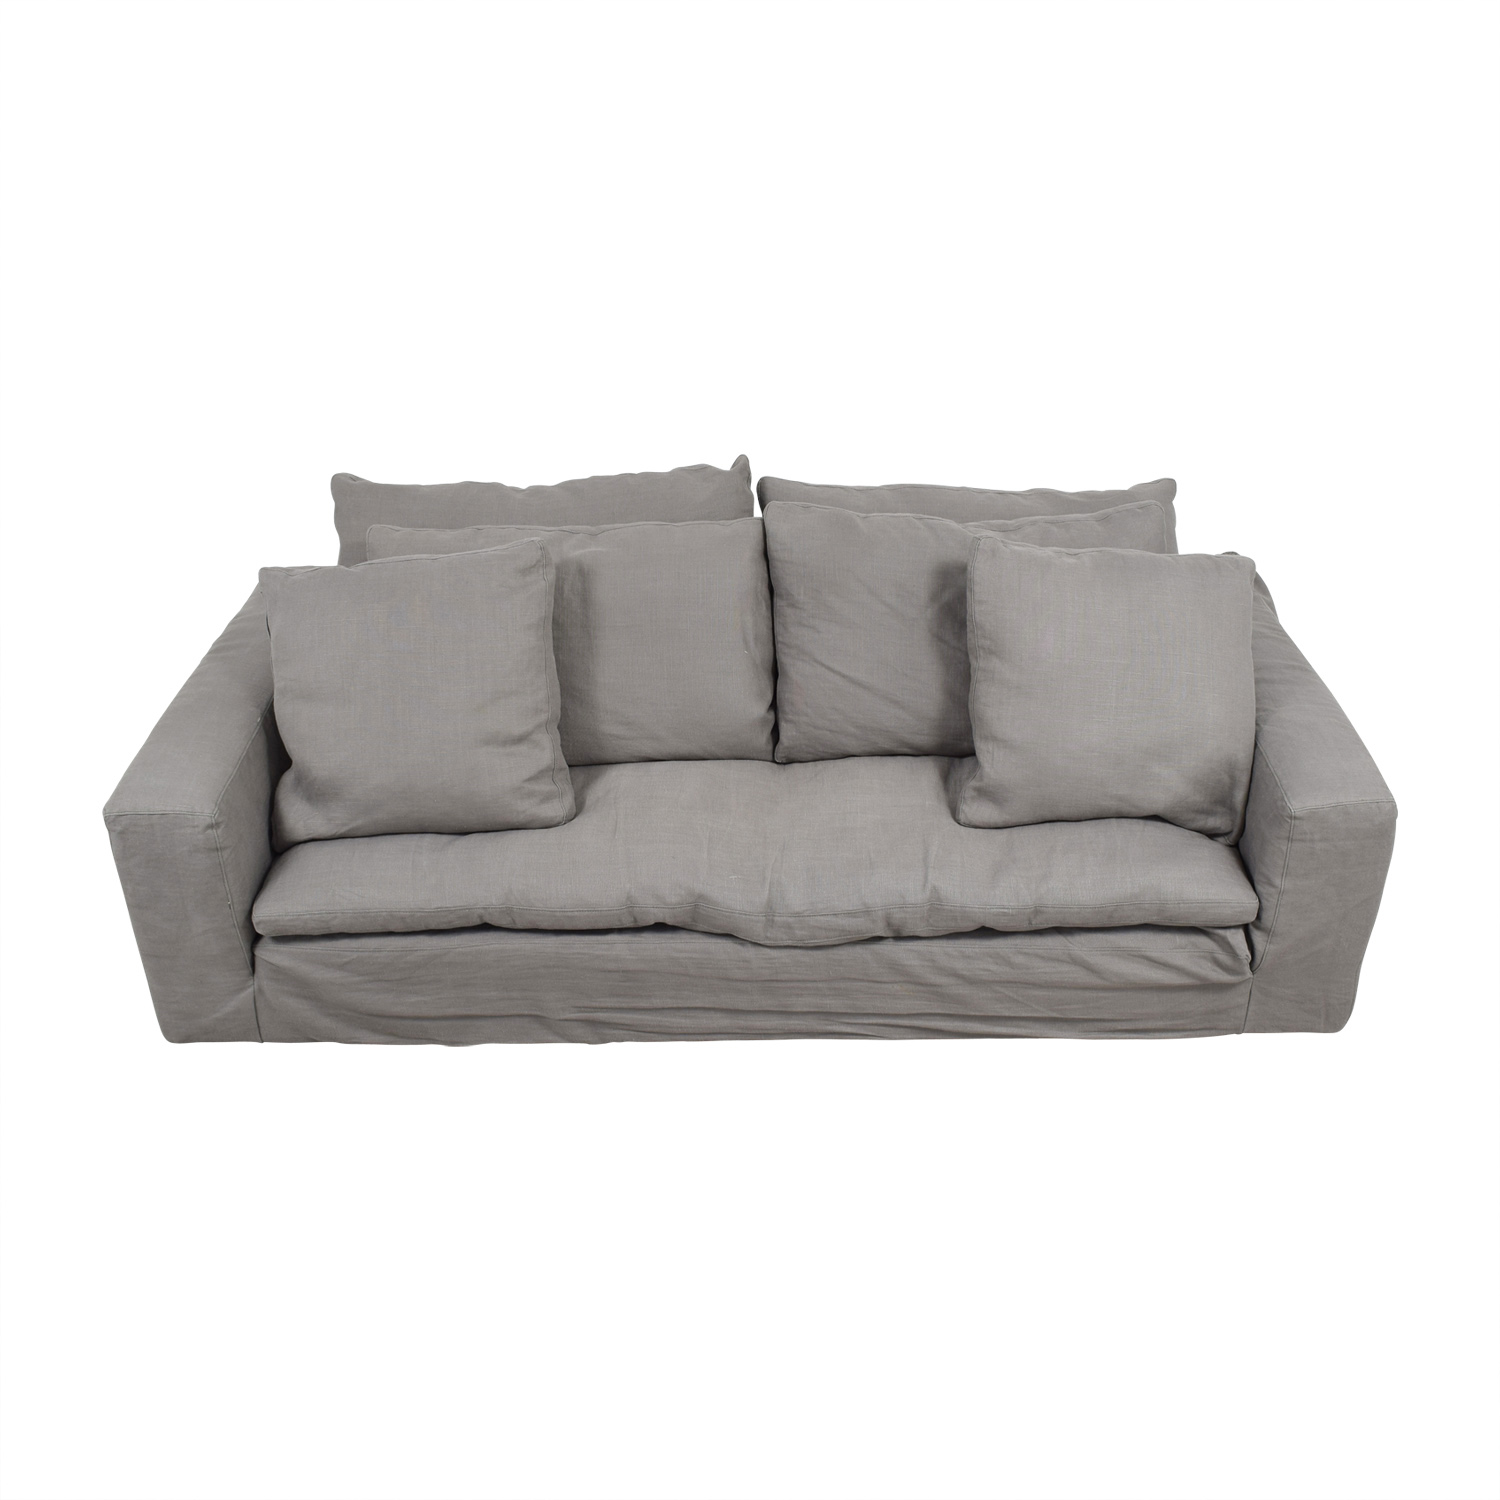 Restoration Hardware Restoration Hardware Grey Cloud Sofa nyc